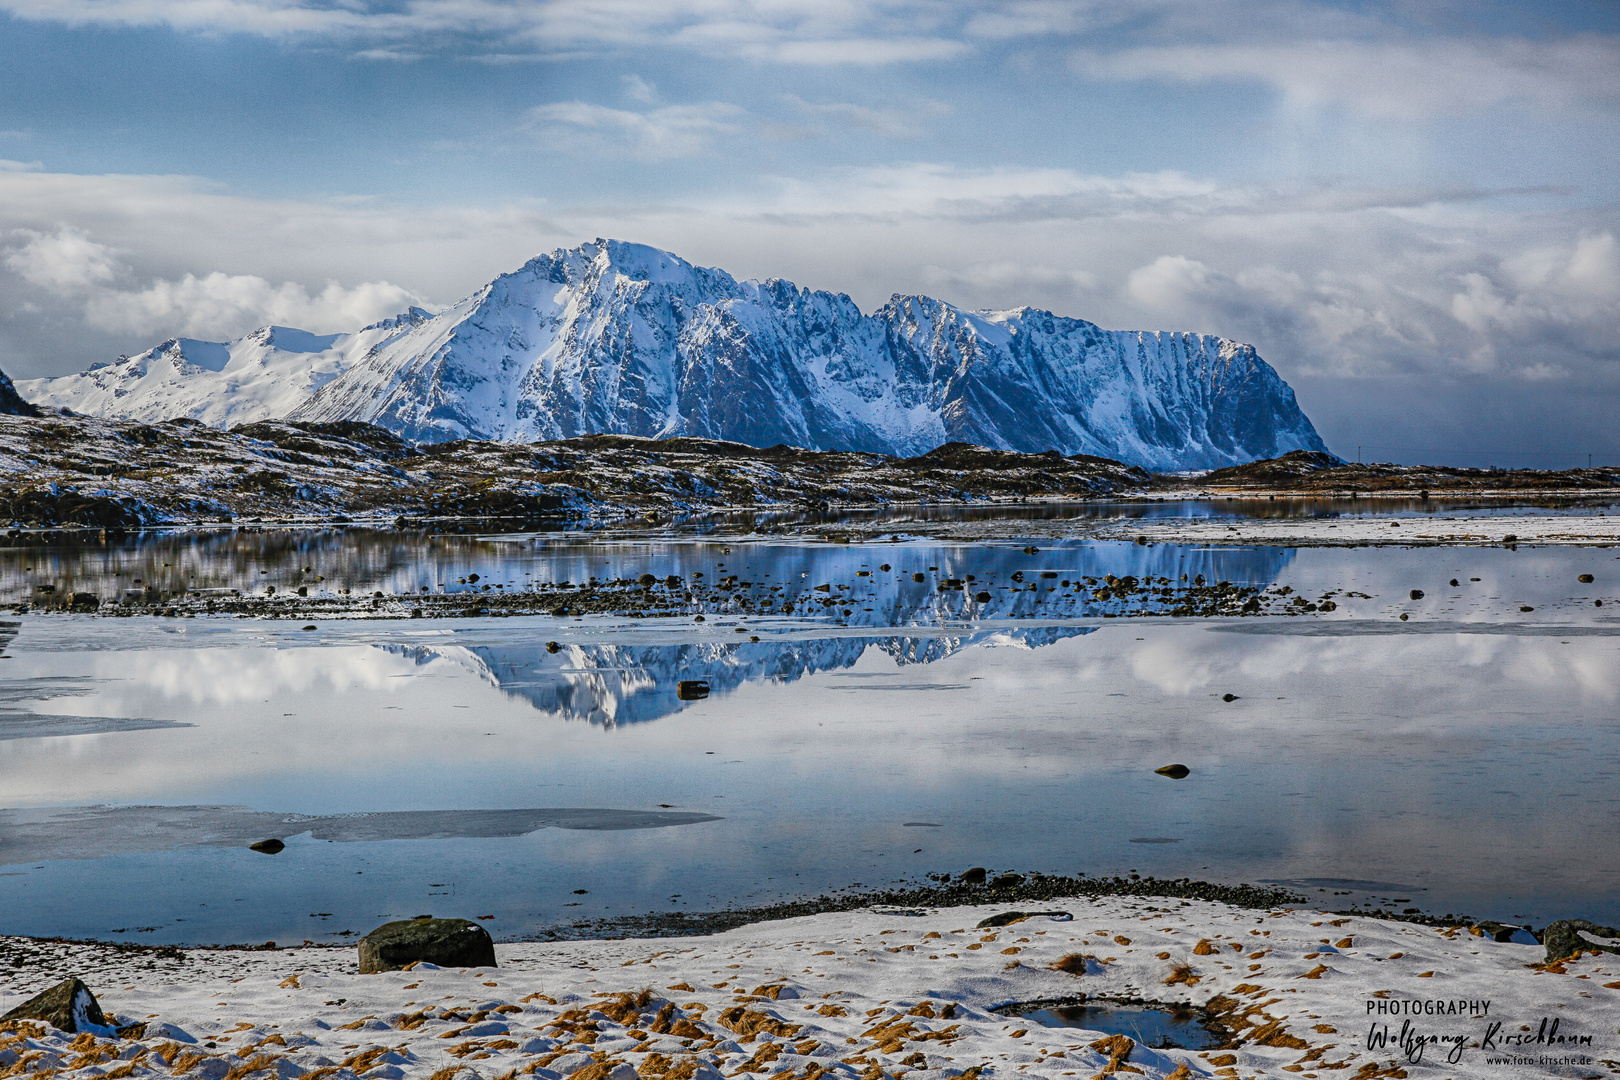 Lofoten, April 2019